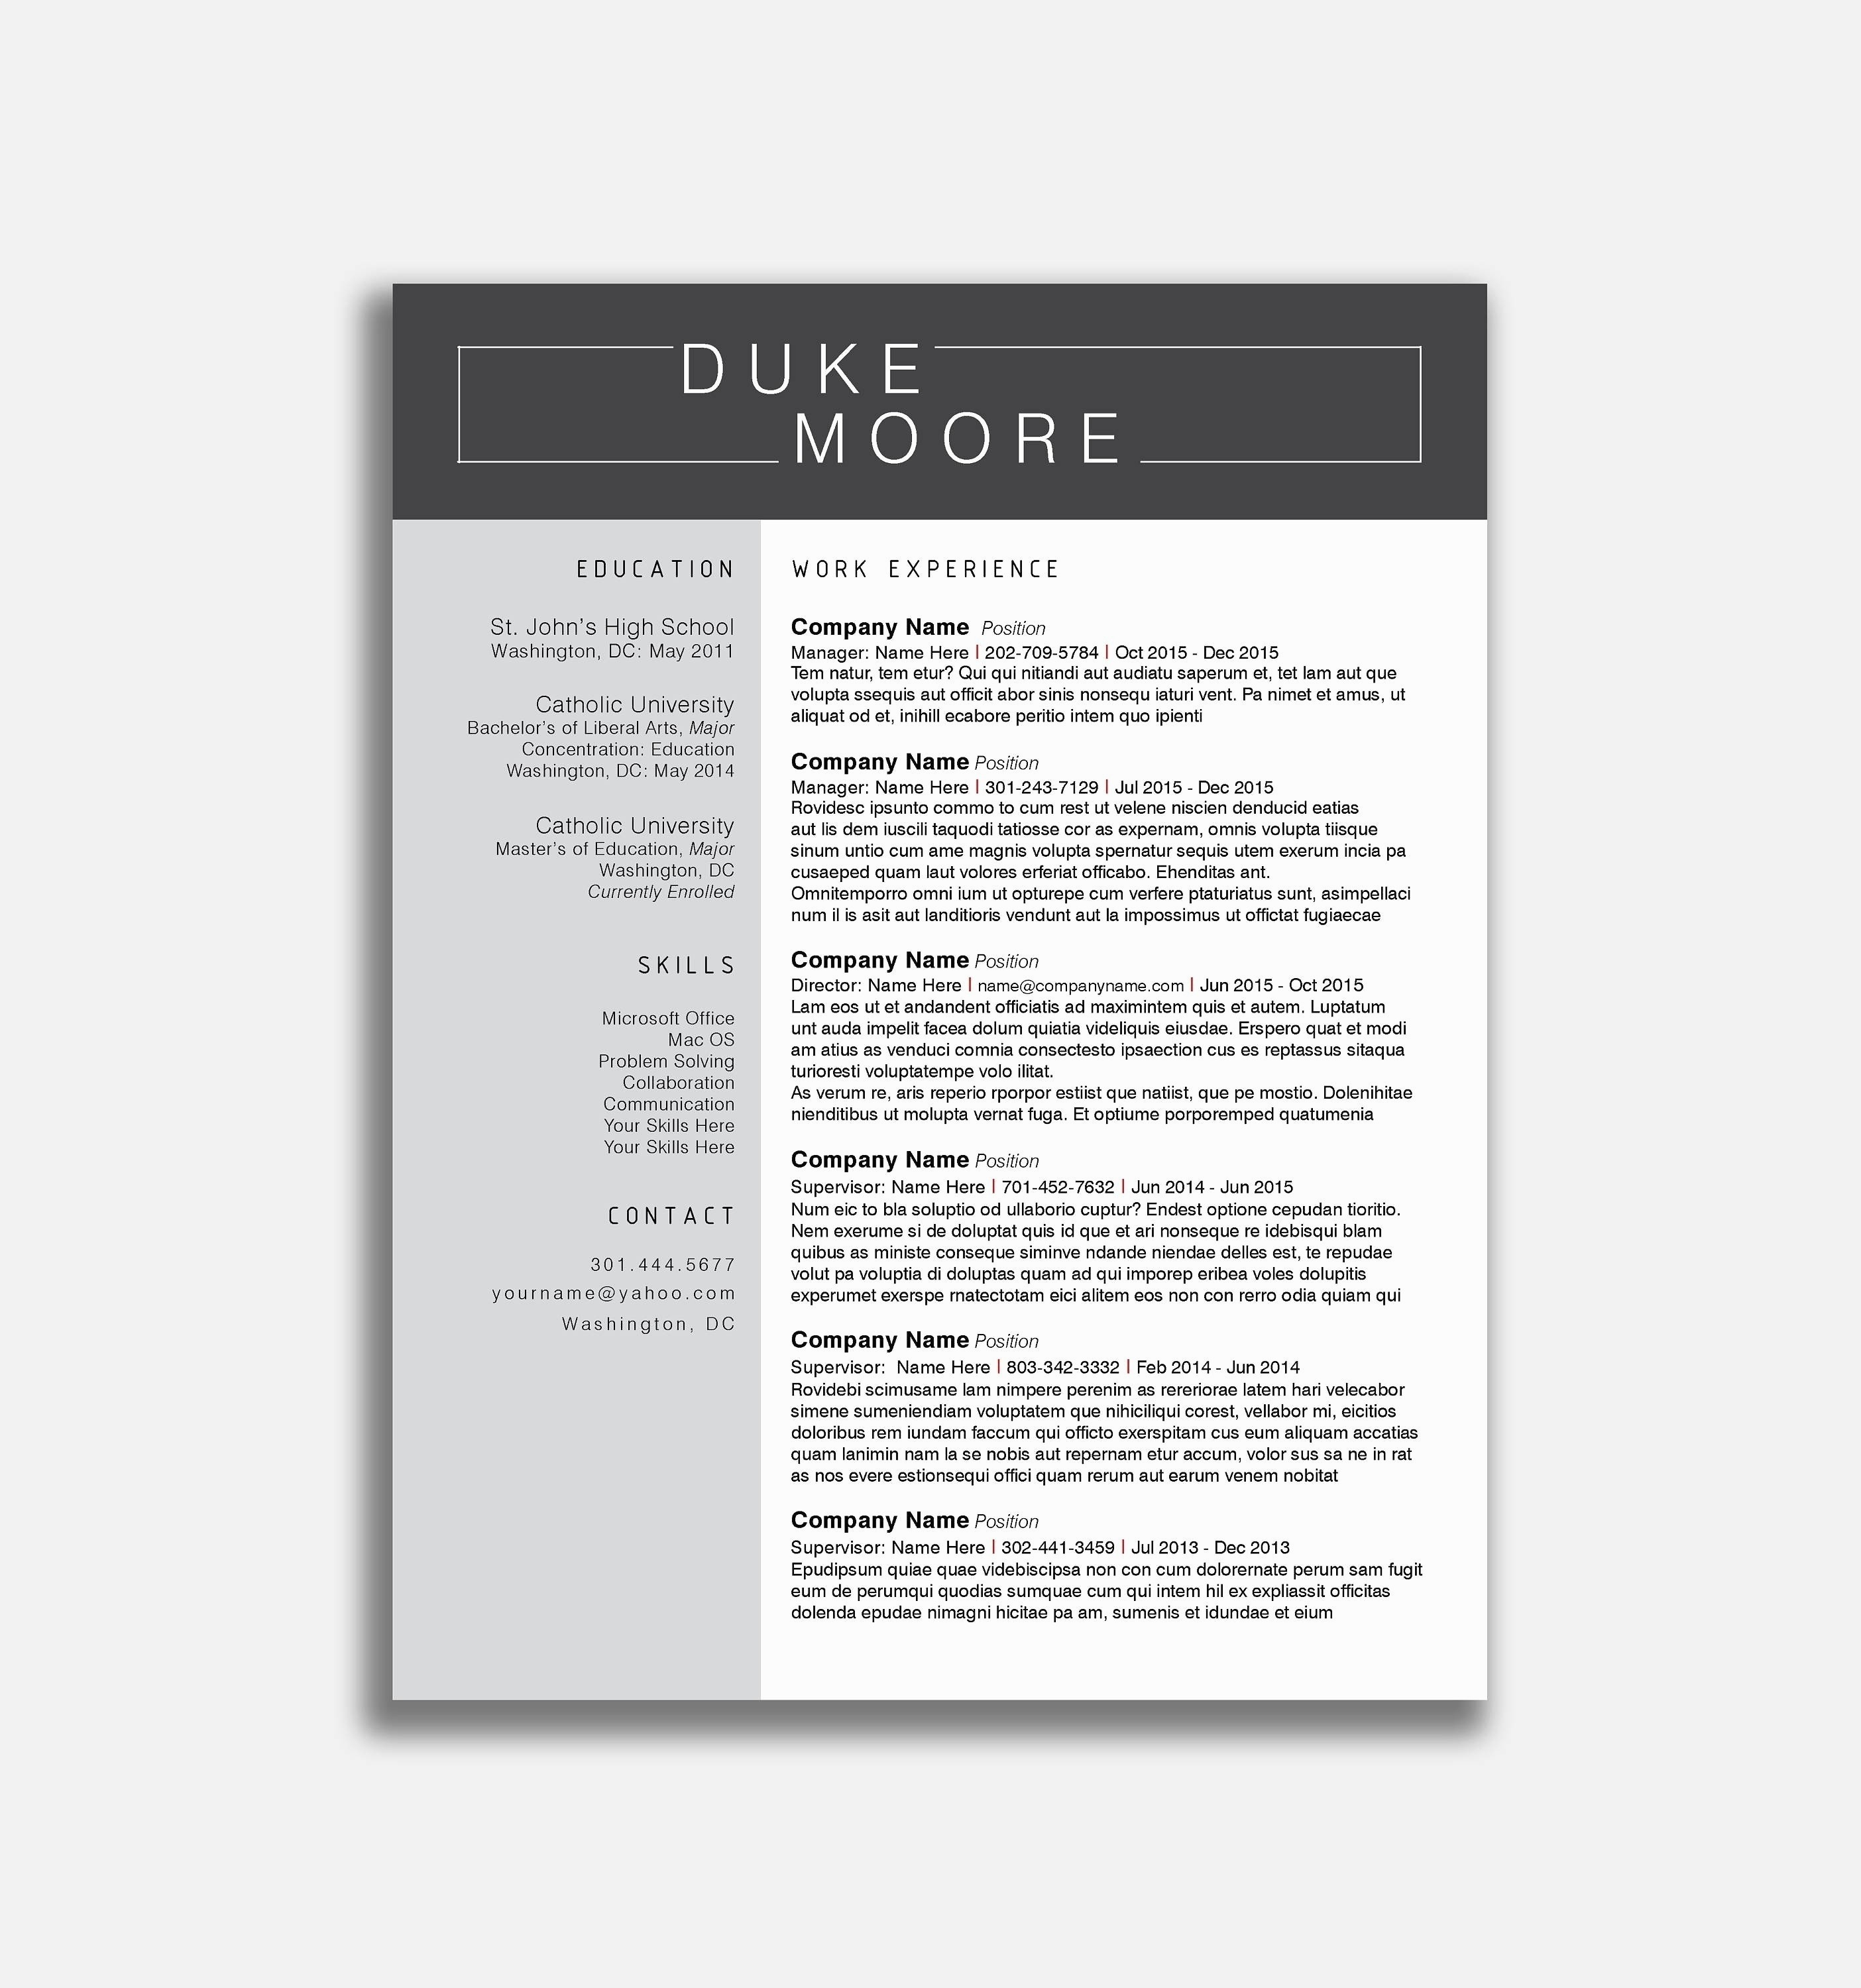 Real Estate Agent Resume Template - Real Estate Resume Sample New Sample Resume Insurance Agent Resume